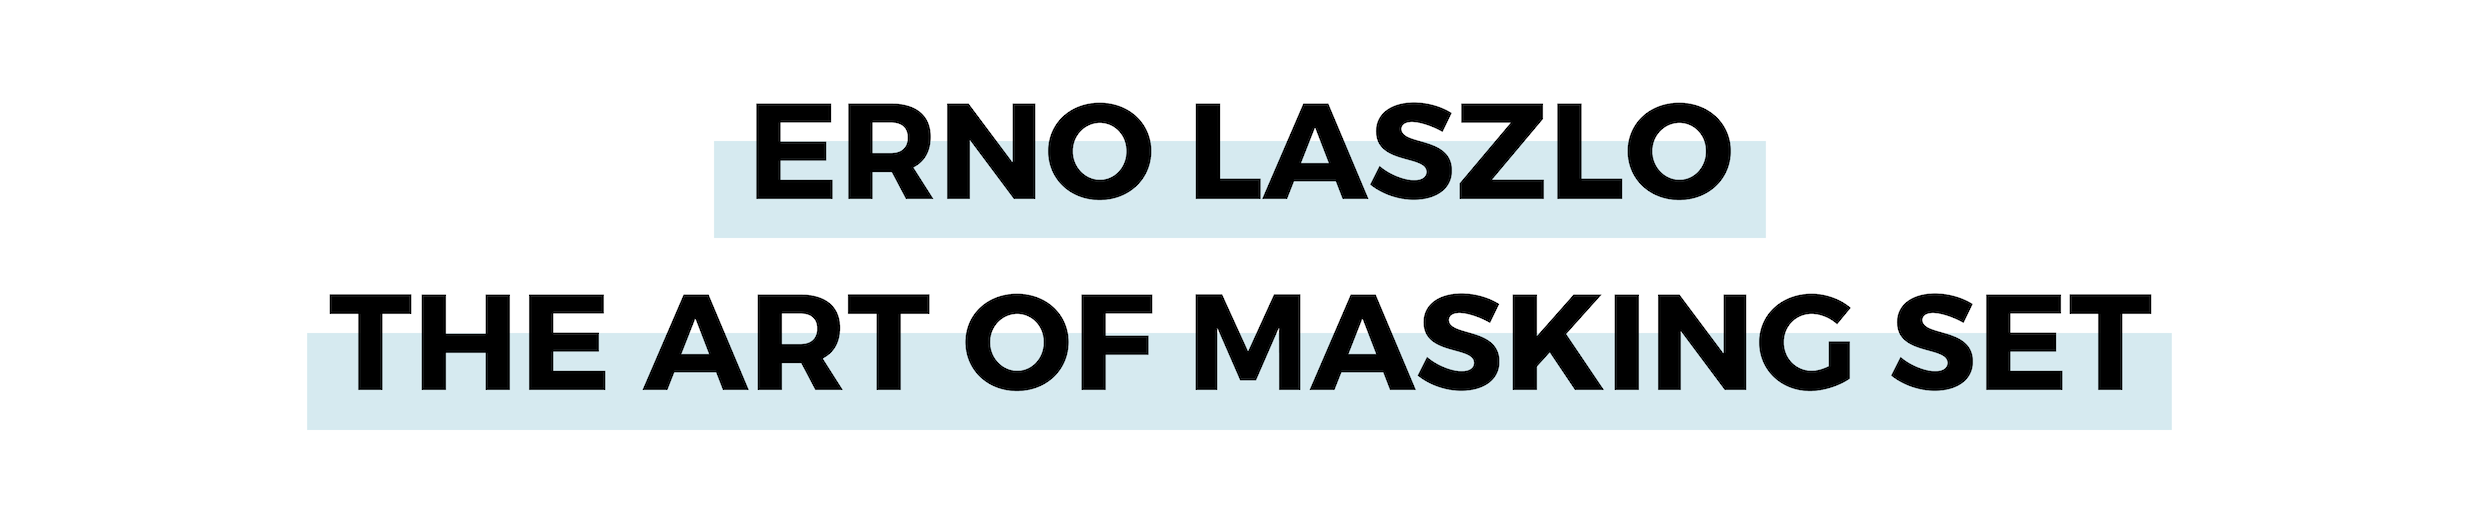 ERNO LASZLO THE ART OF MASKING SET.png